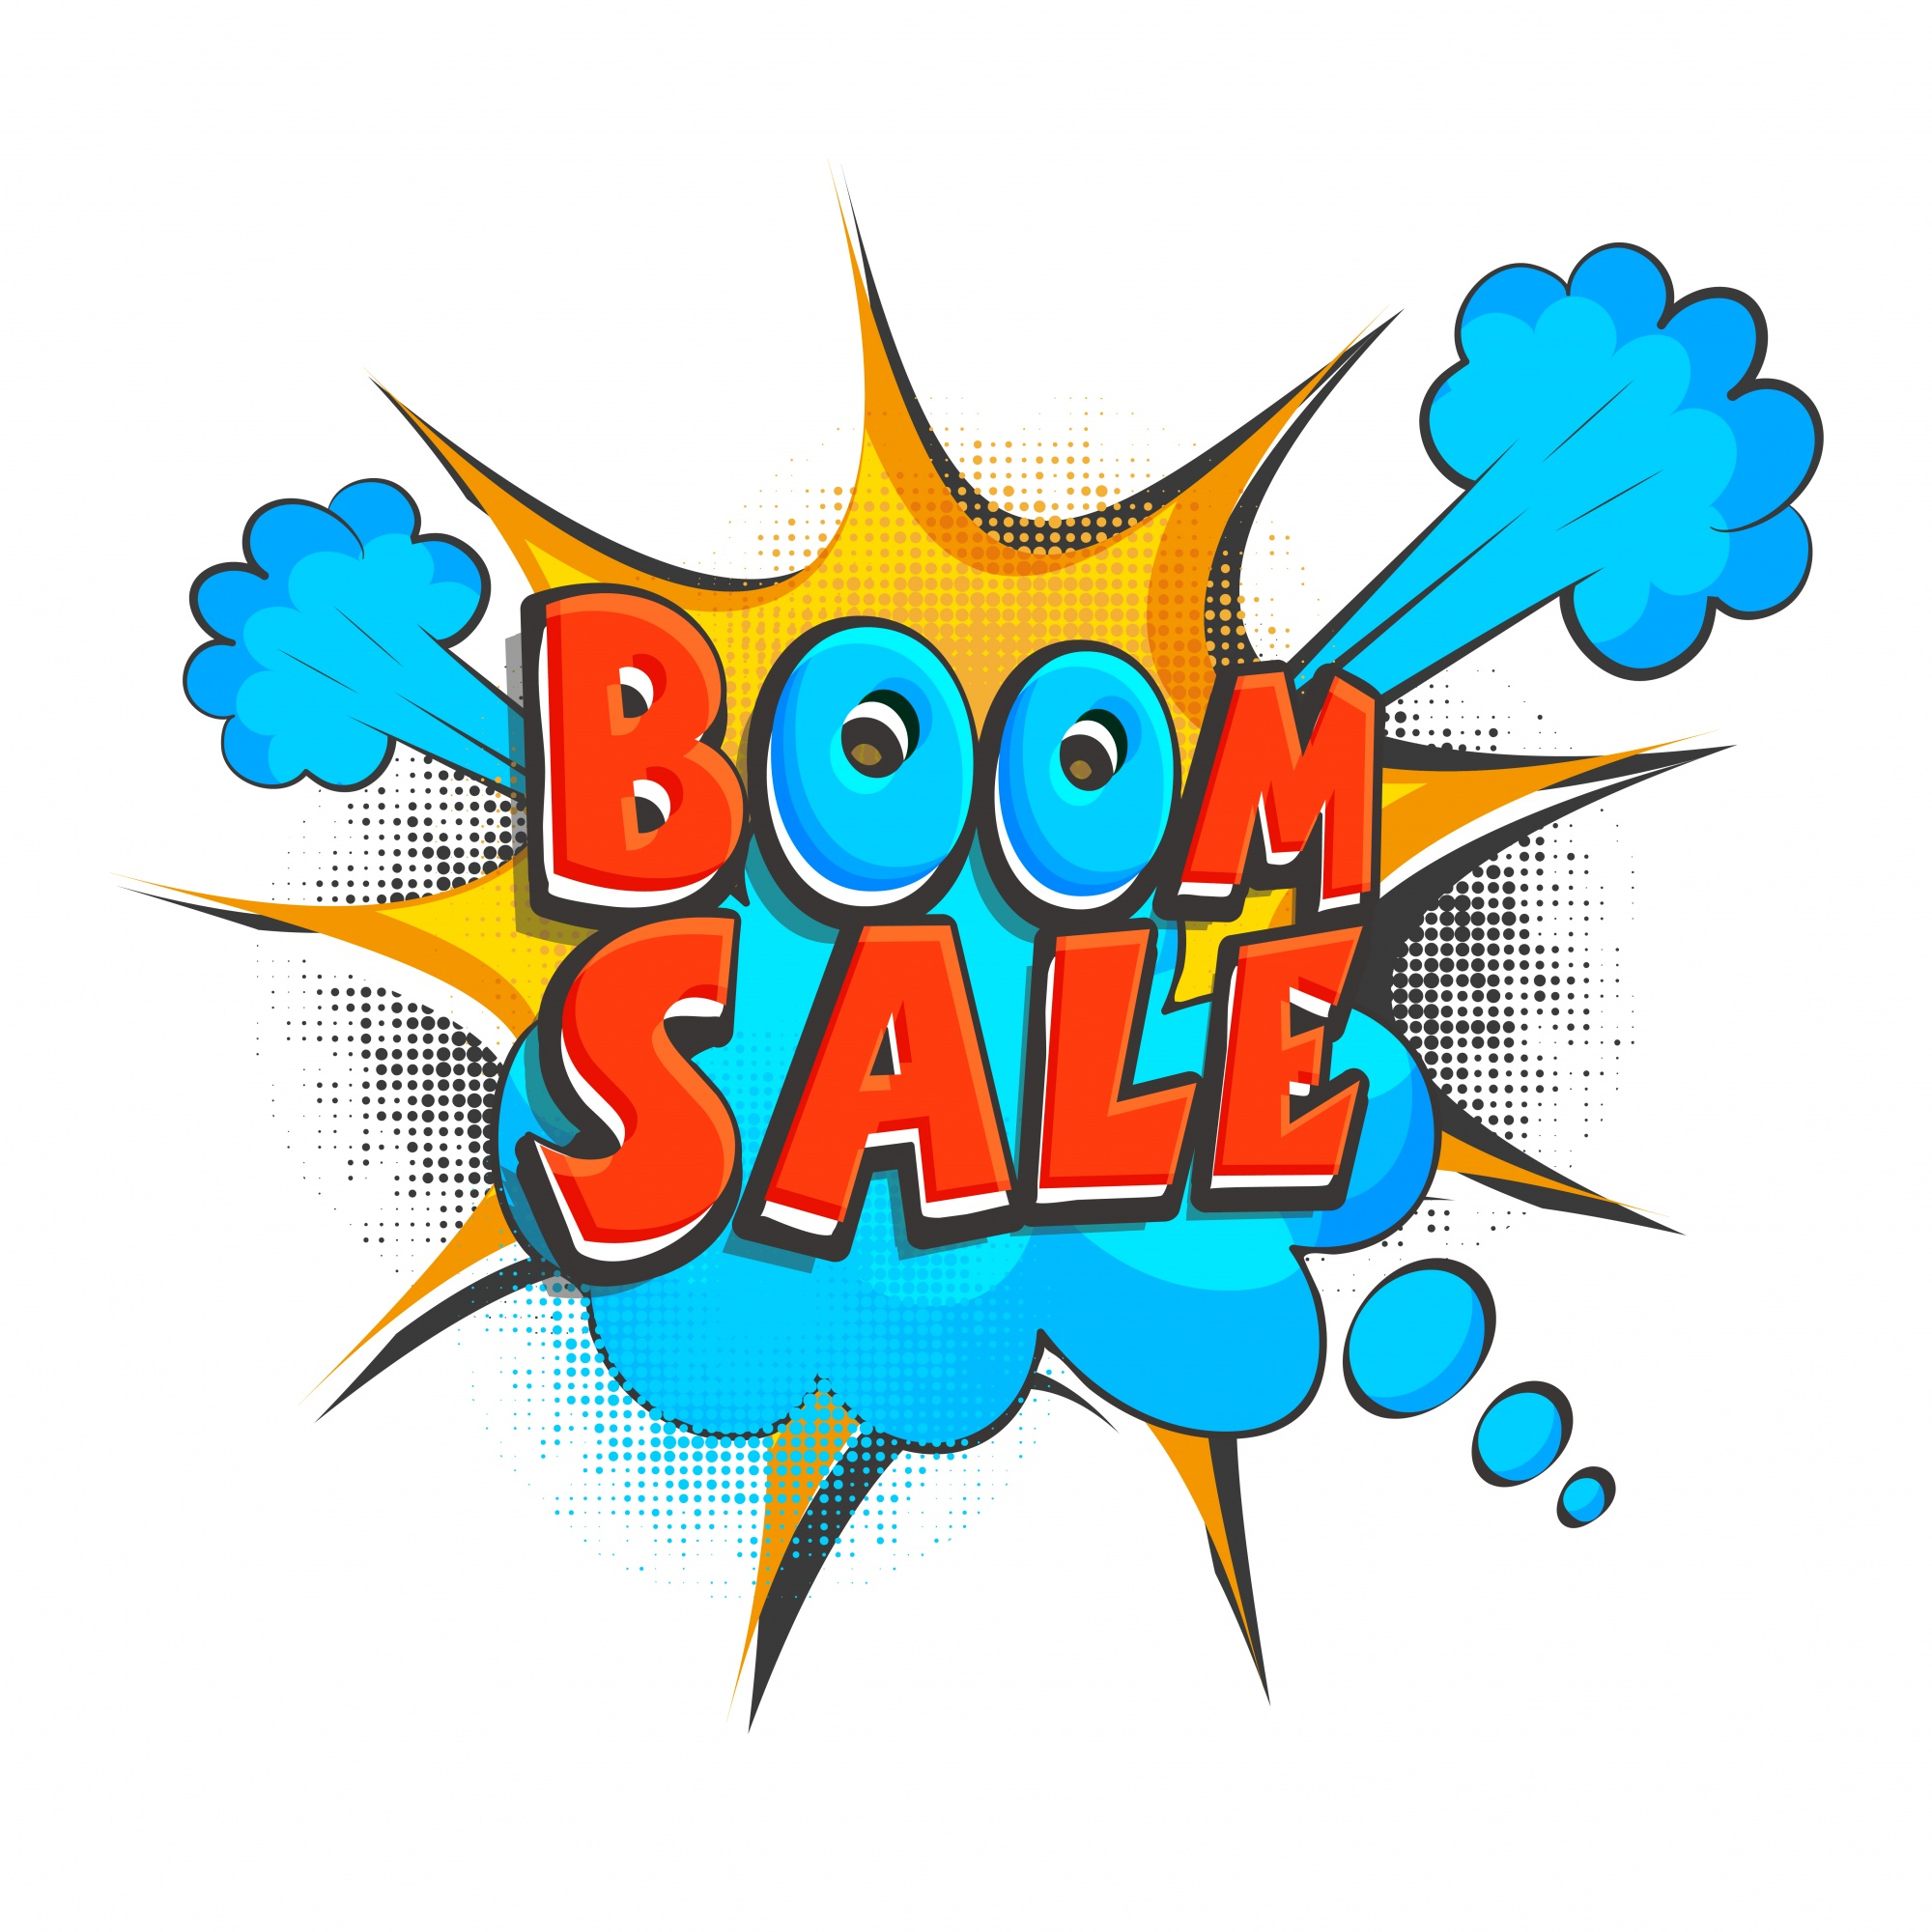 Boom Sale Text on pop art style background.